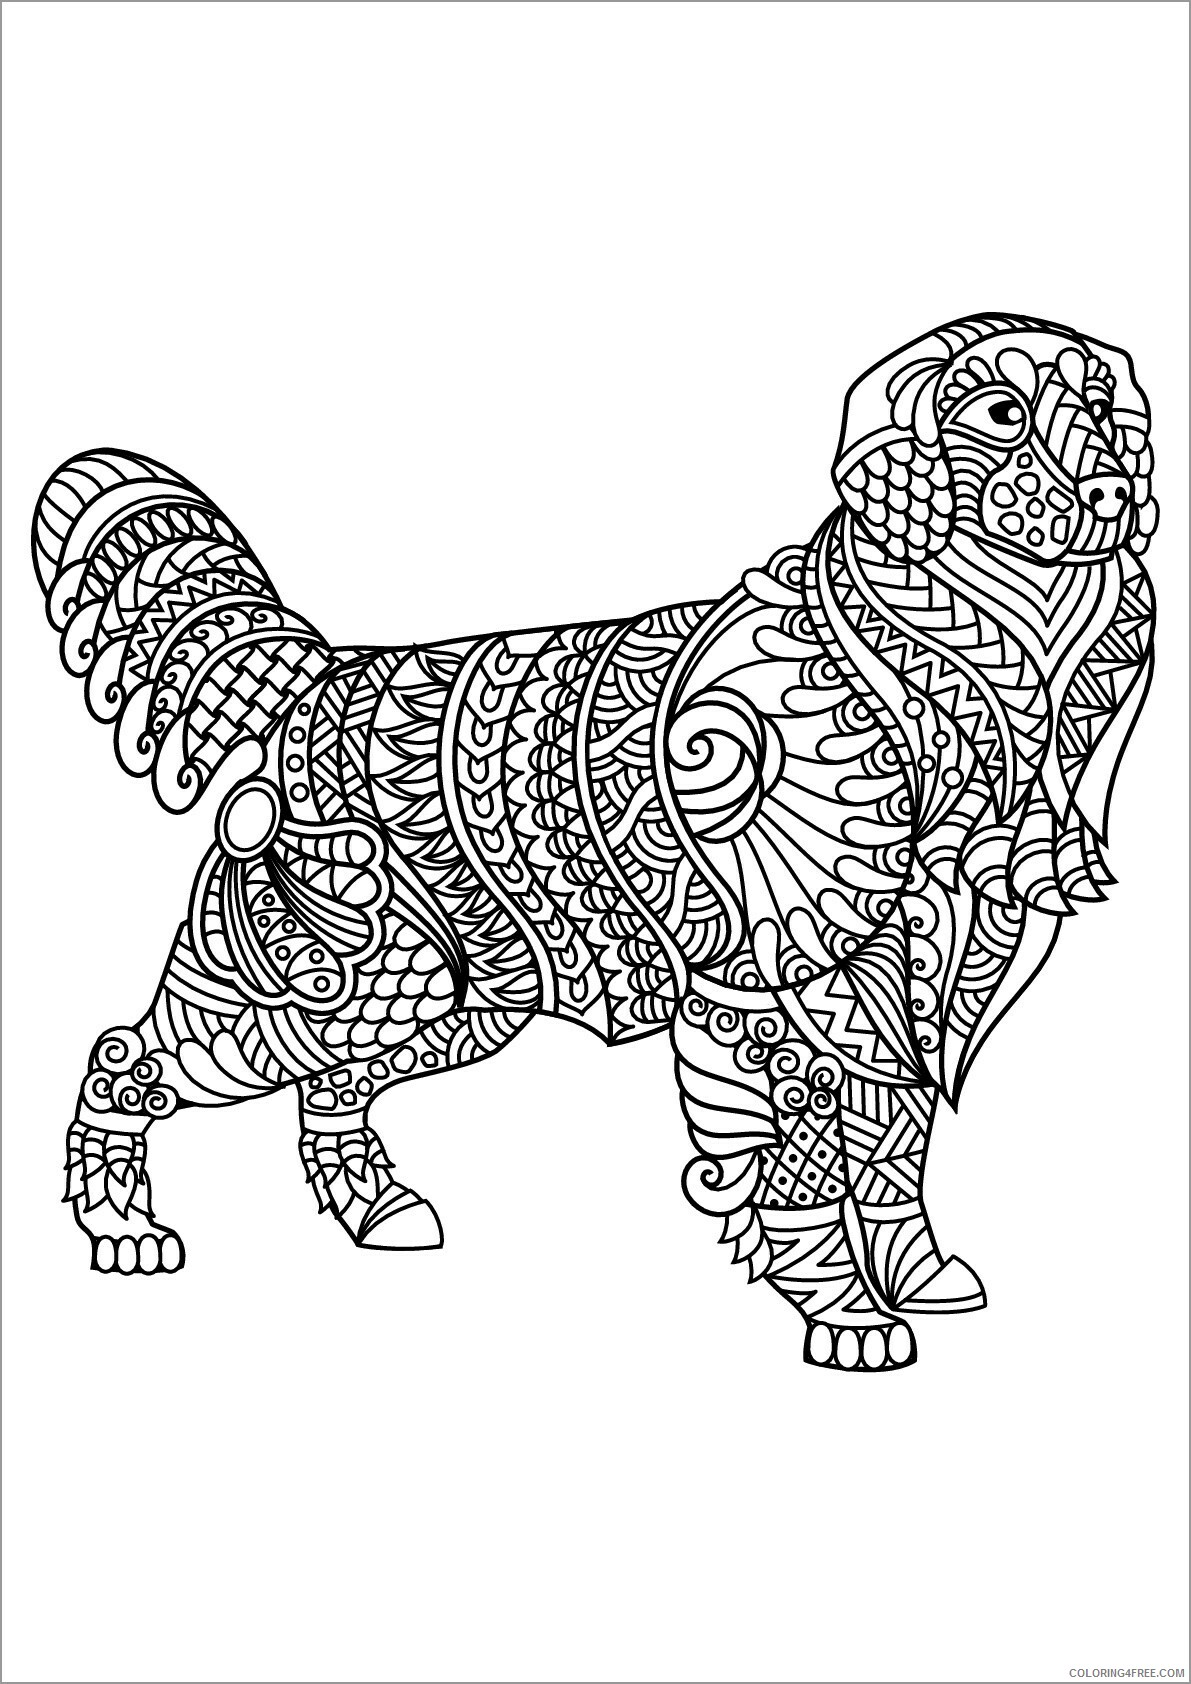 Adult Dog Coloring Pages labrador dog for adults Printable 2020 235 Coloring4free